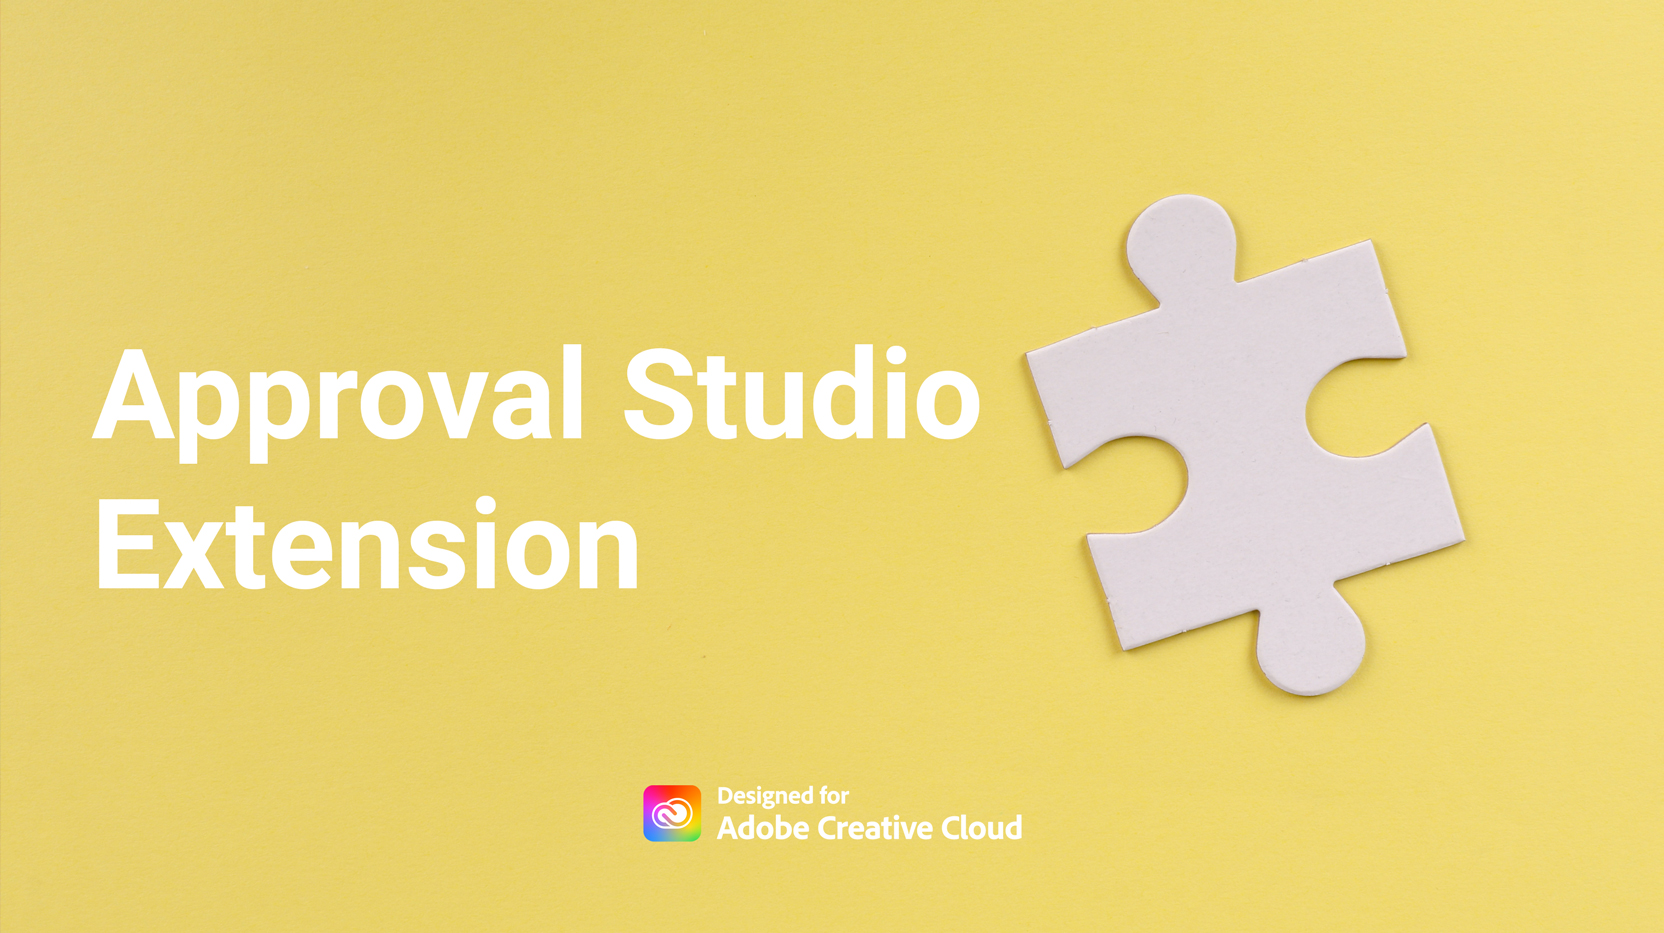 adobe approval studio extension banner